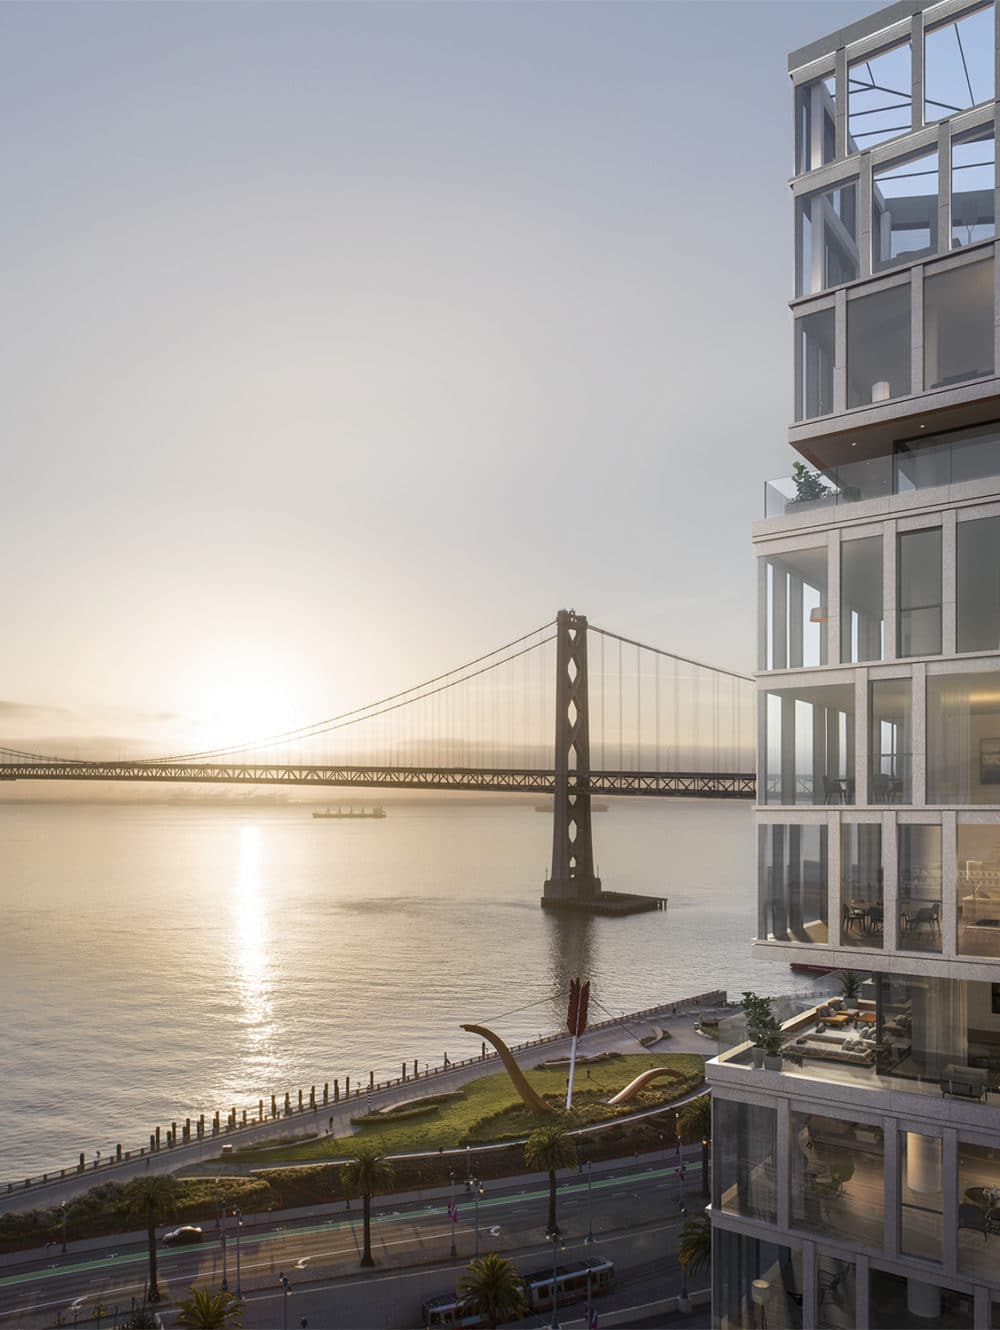 Birds-eye view of One Steuart Lane condos in SF. Sun reflecting off glass facade with Bay Bridge in the distance at sunrise.